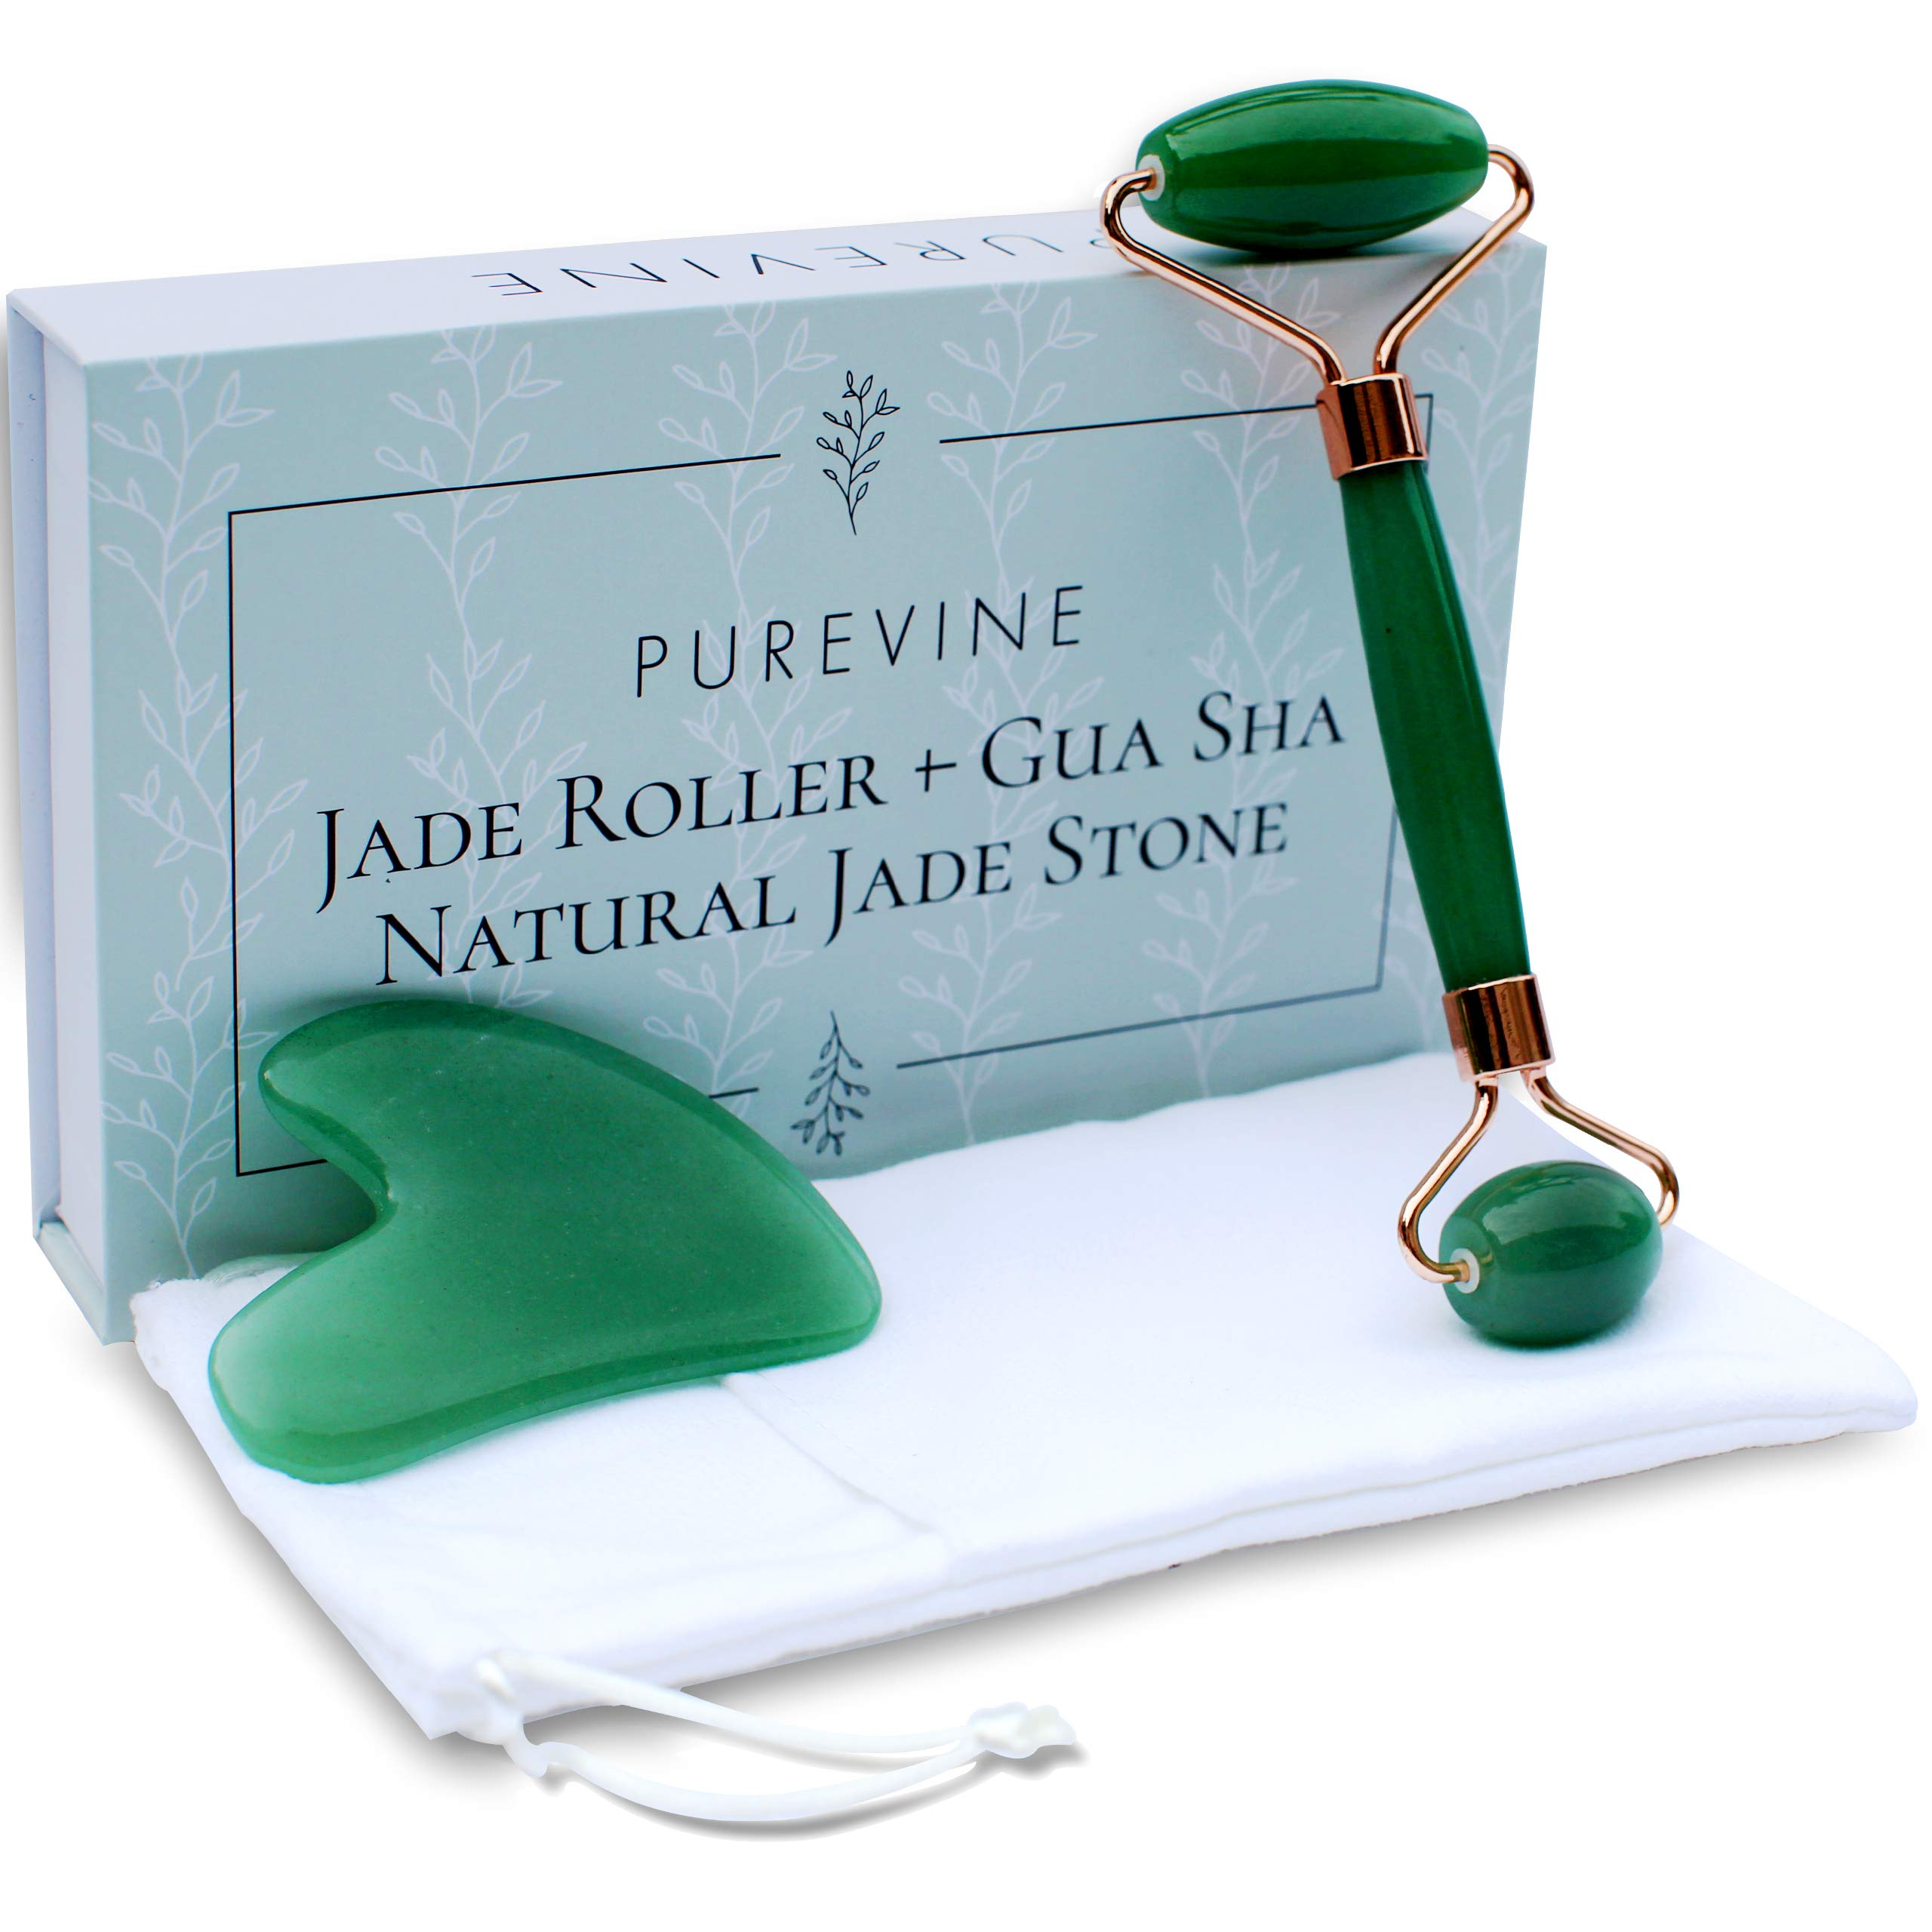 Jade Roller for Face and Gua Sha Scraping Tool Kit - Anti Aging Beauty Facial Massage Set - 100% Natural Jade Stone - Beautiful Skin Detox - Remove Dark Circles, Puffy Eyes, Fine Lines by PUREVINE